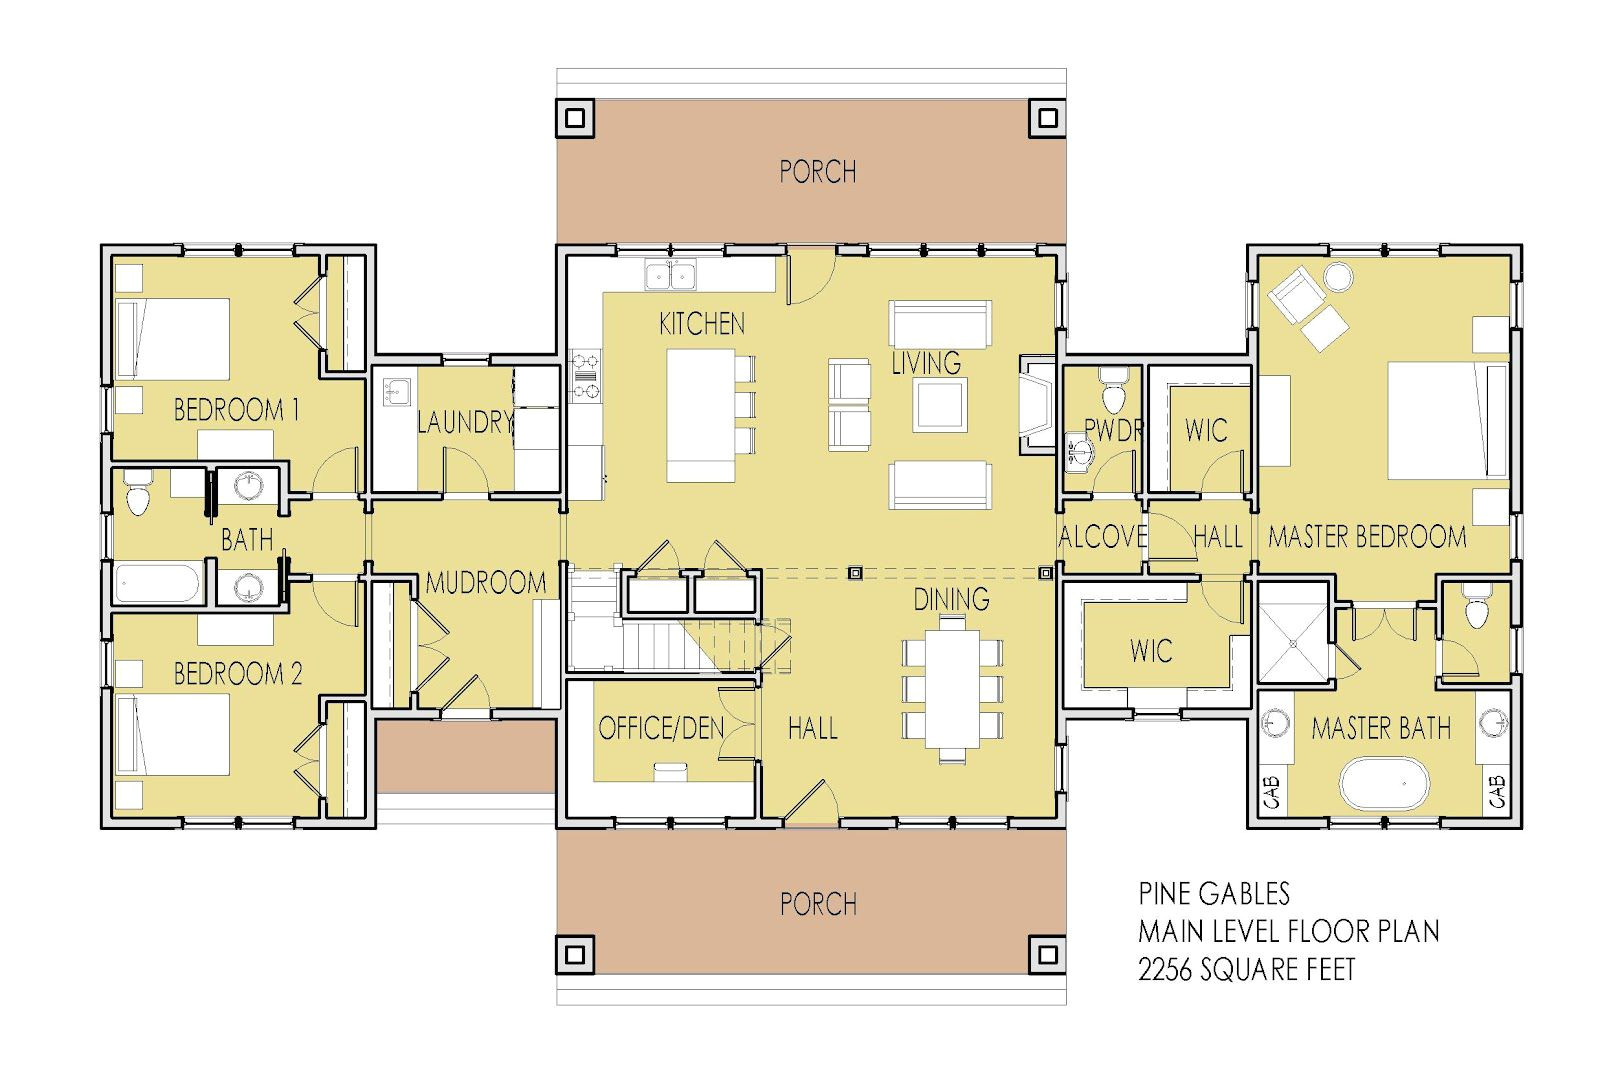 1 story house plans with 2 master bedrooms